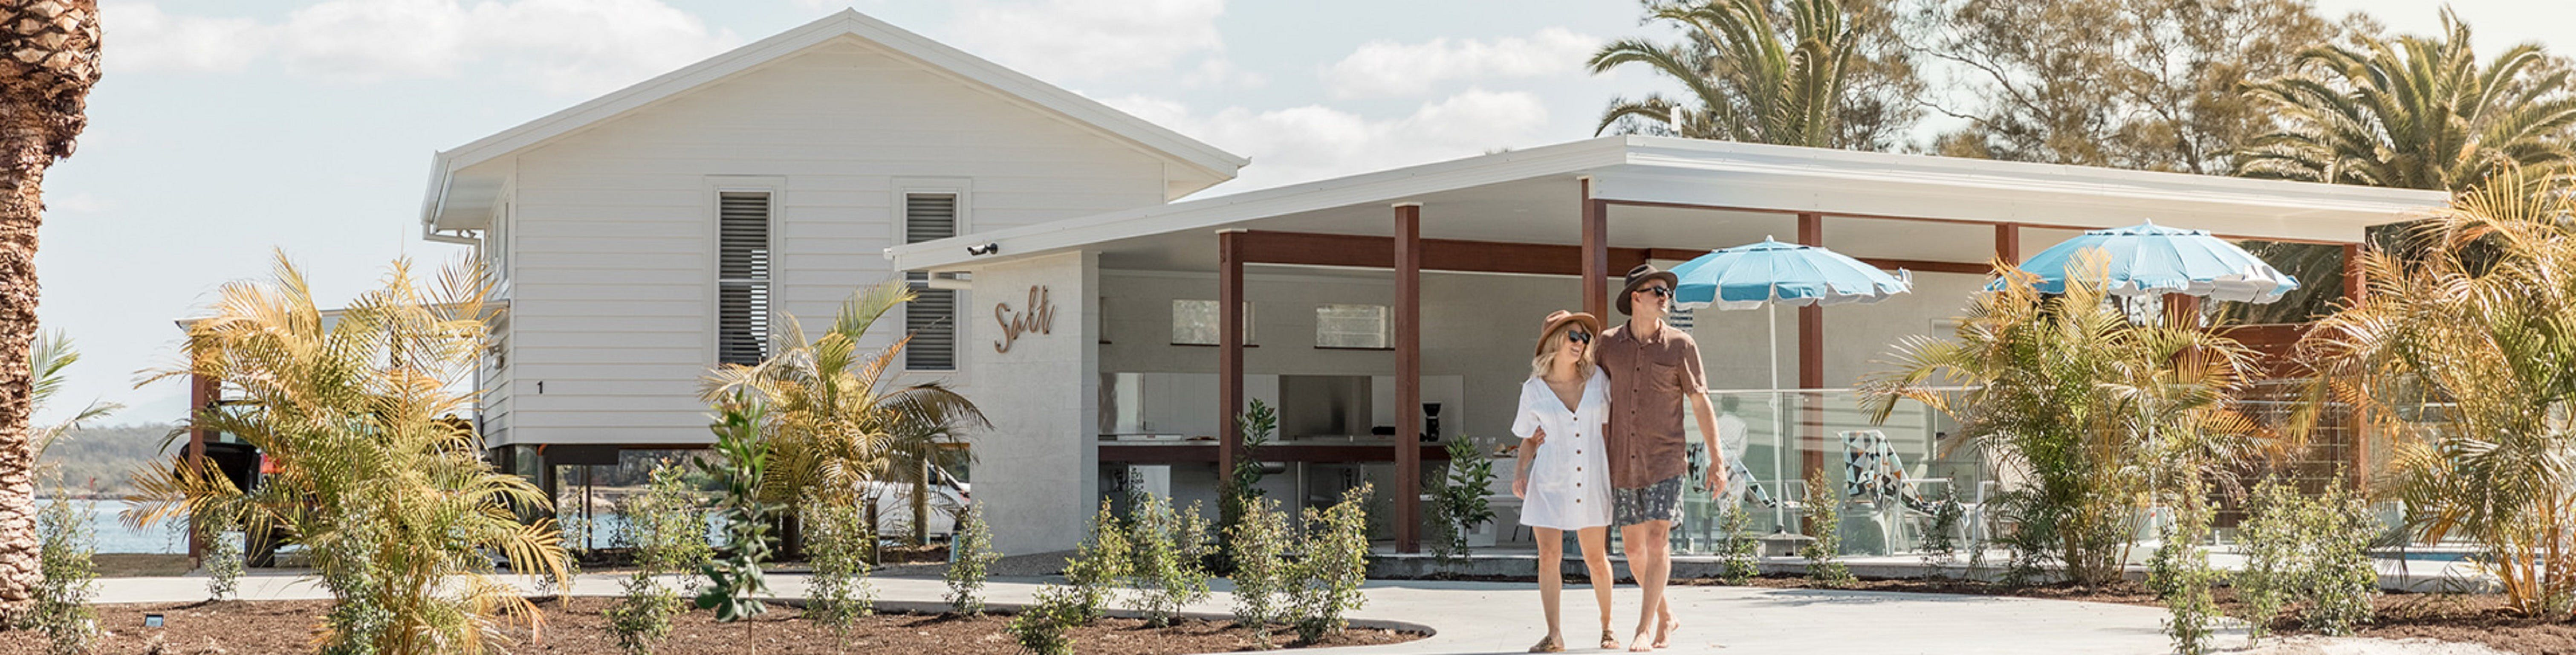 Salt at South West Rocks - Accommodation in Surfers Paradise